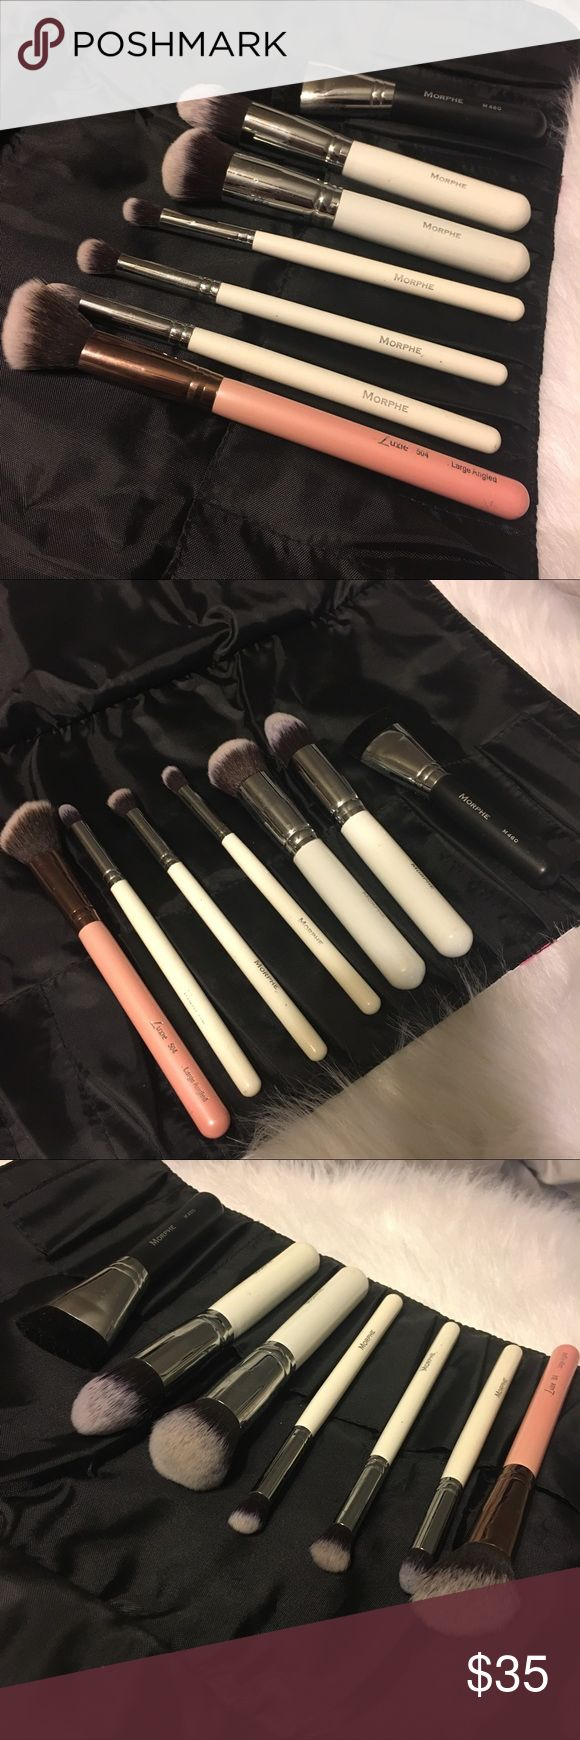 Makeup Brush Bundle ✨Morphe Contour Makeup Brush Set ✨Morphe M460 Flat Contour Brush ✨Luxie Large Angled Brush  All lightly used but have been cleaned and ready to ship 📦 Makeup Brushes & Tools